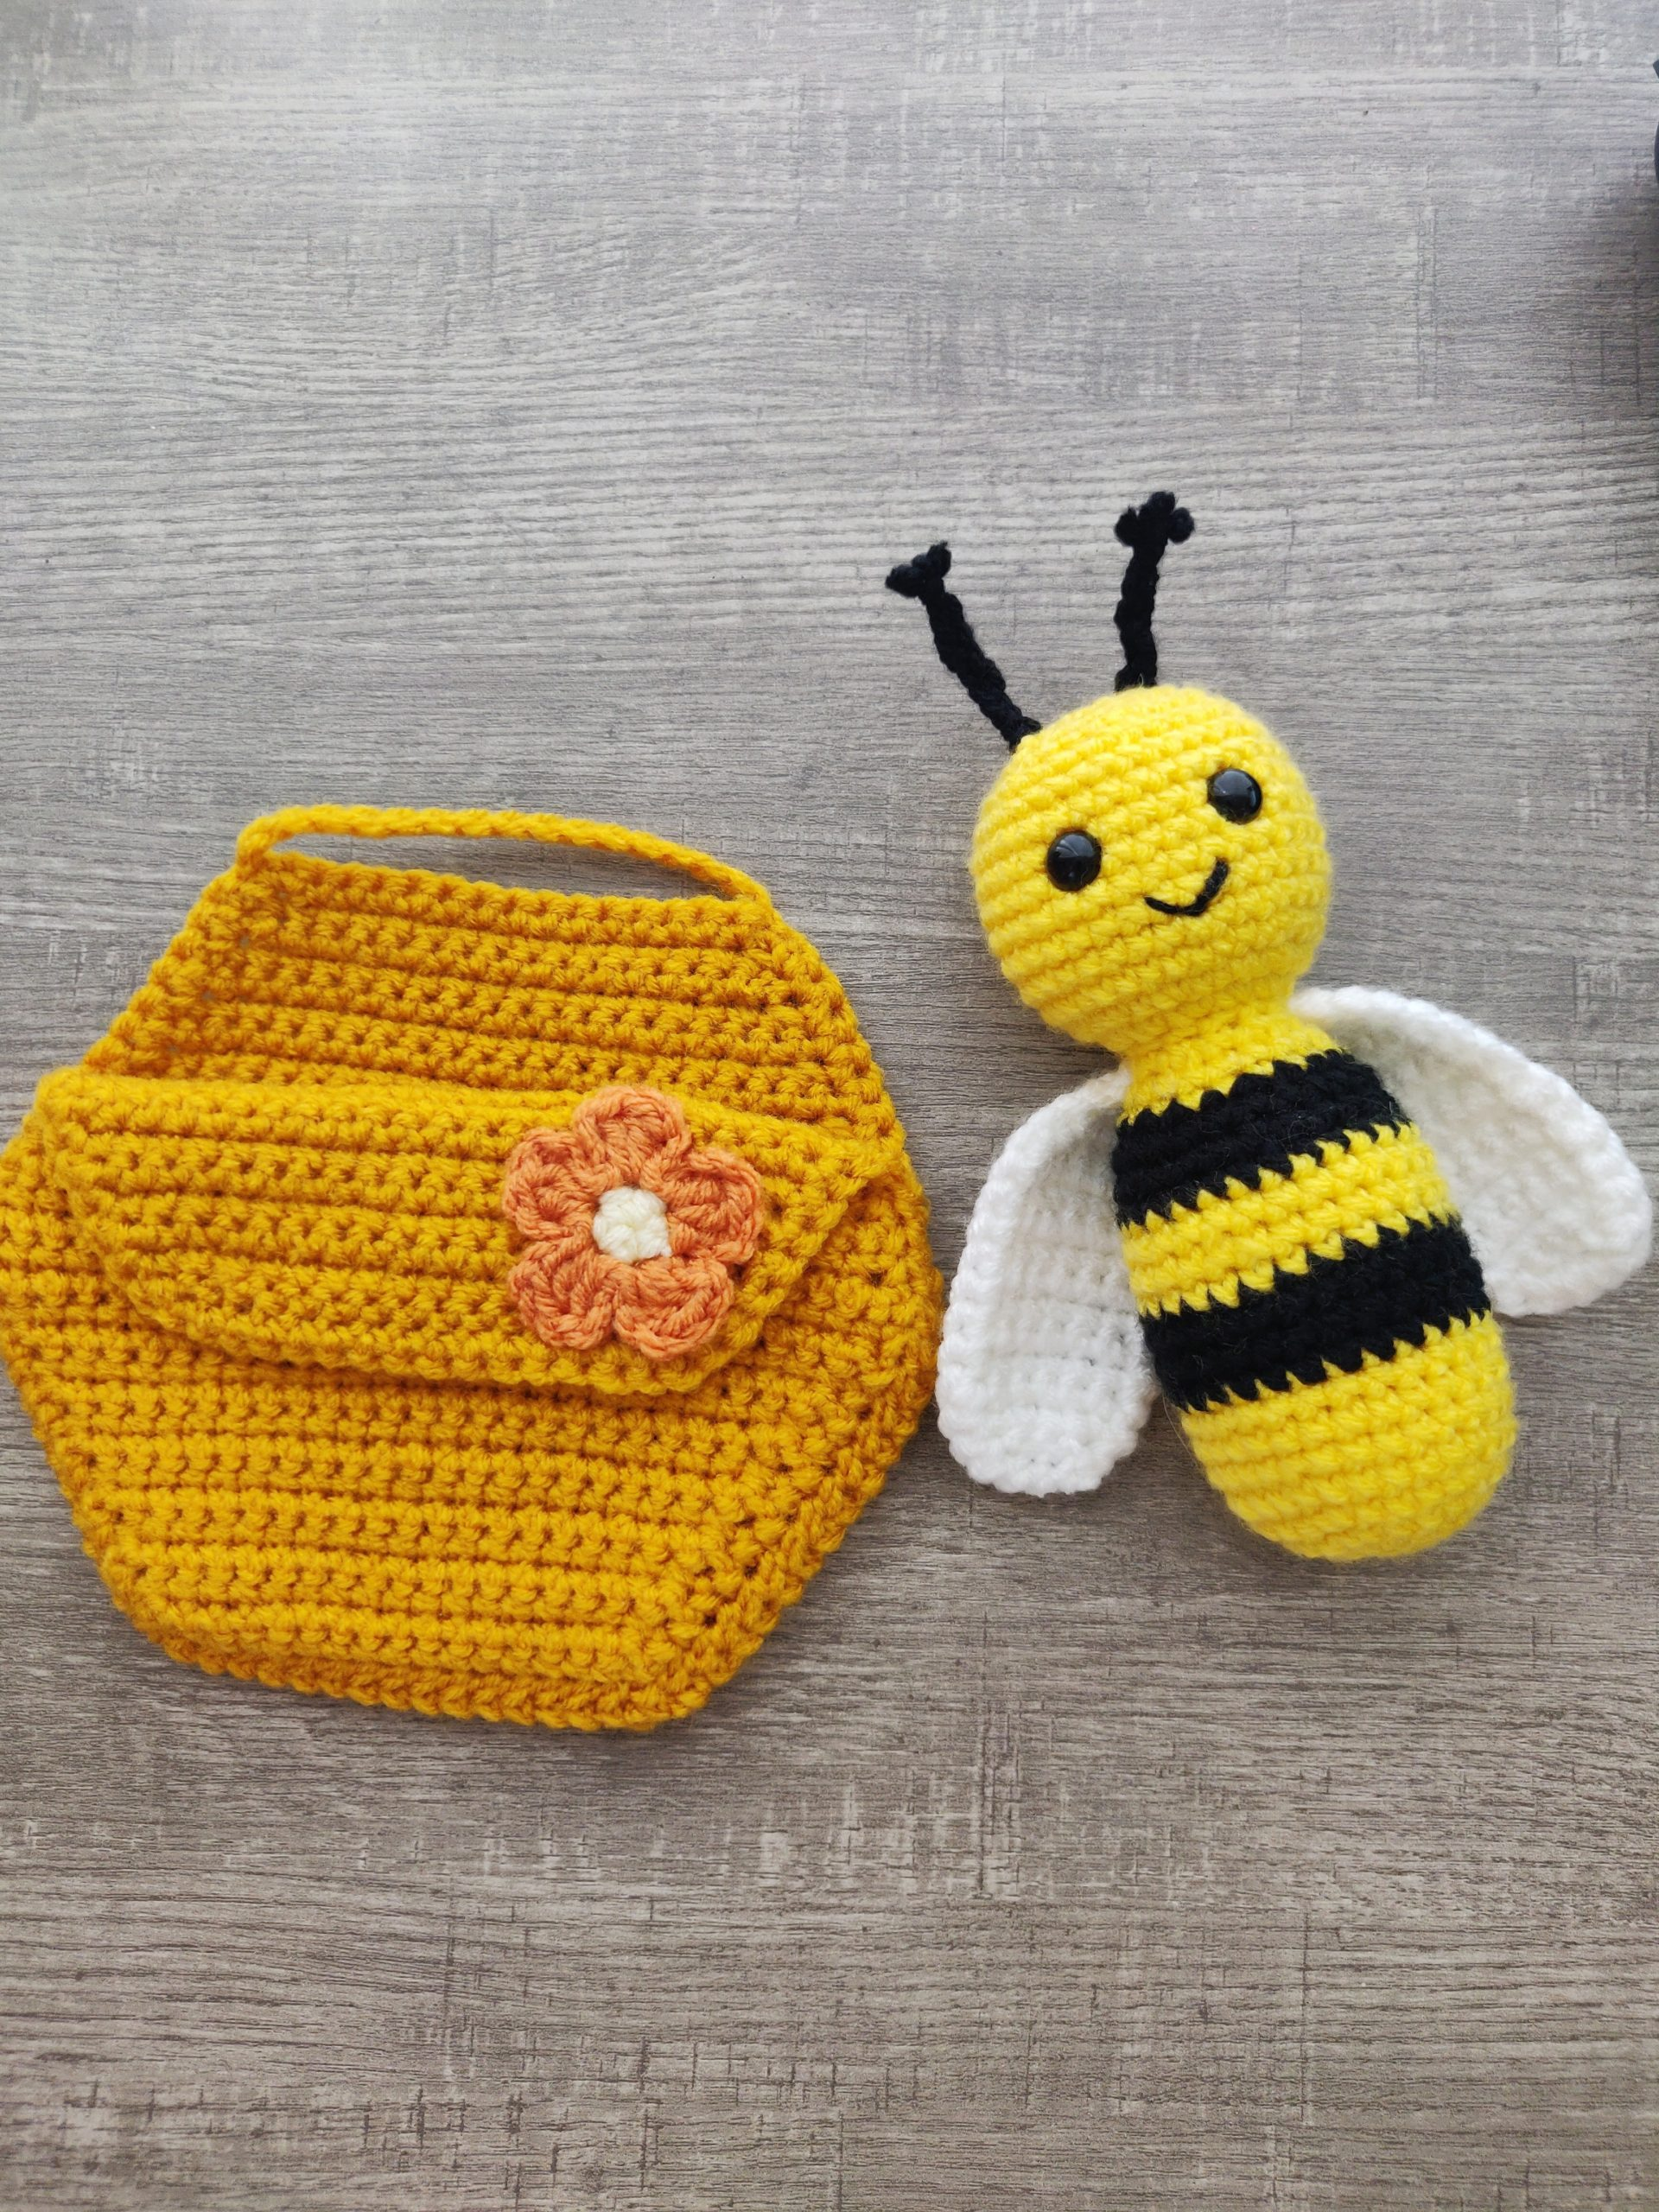 Crochet honey comb and yellow and black bee by ariana hall